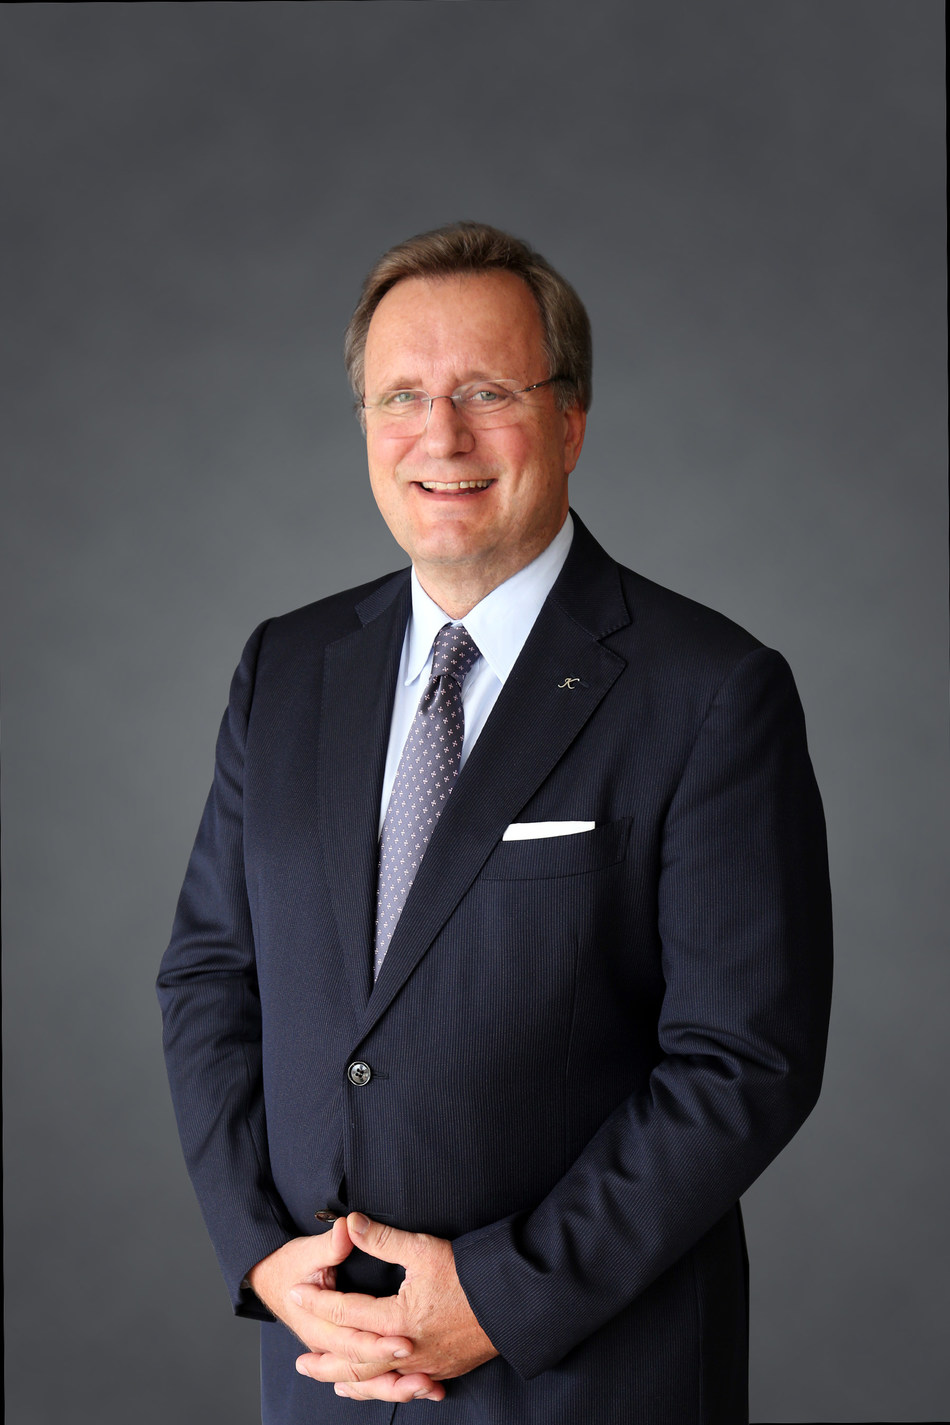 General Manager - Albert Rouwendal